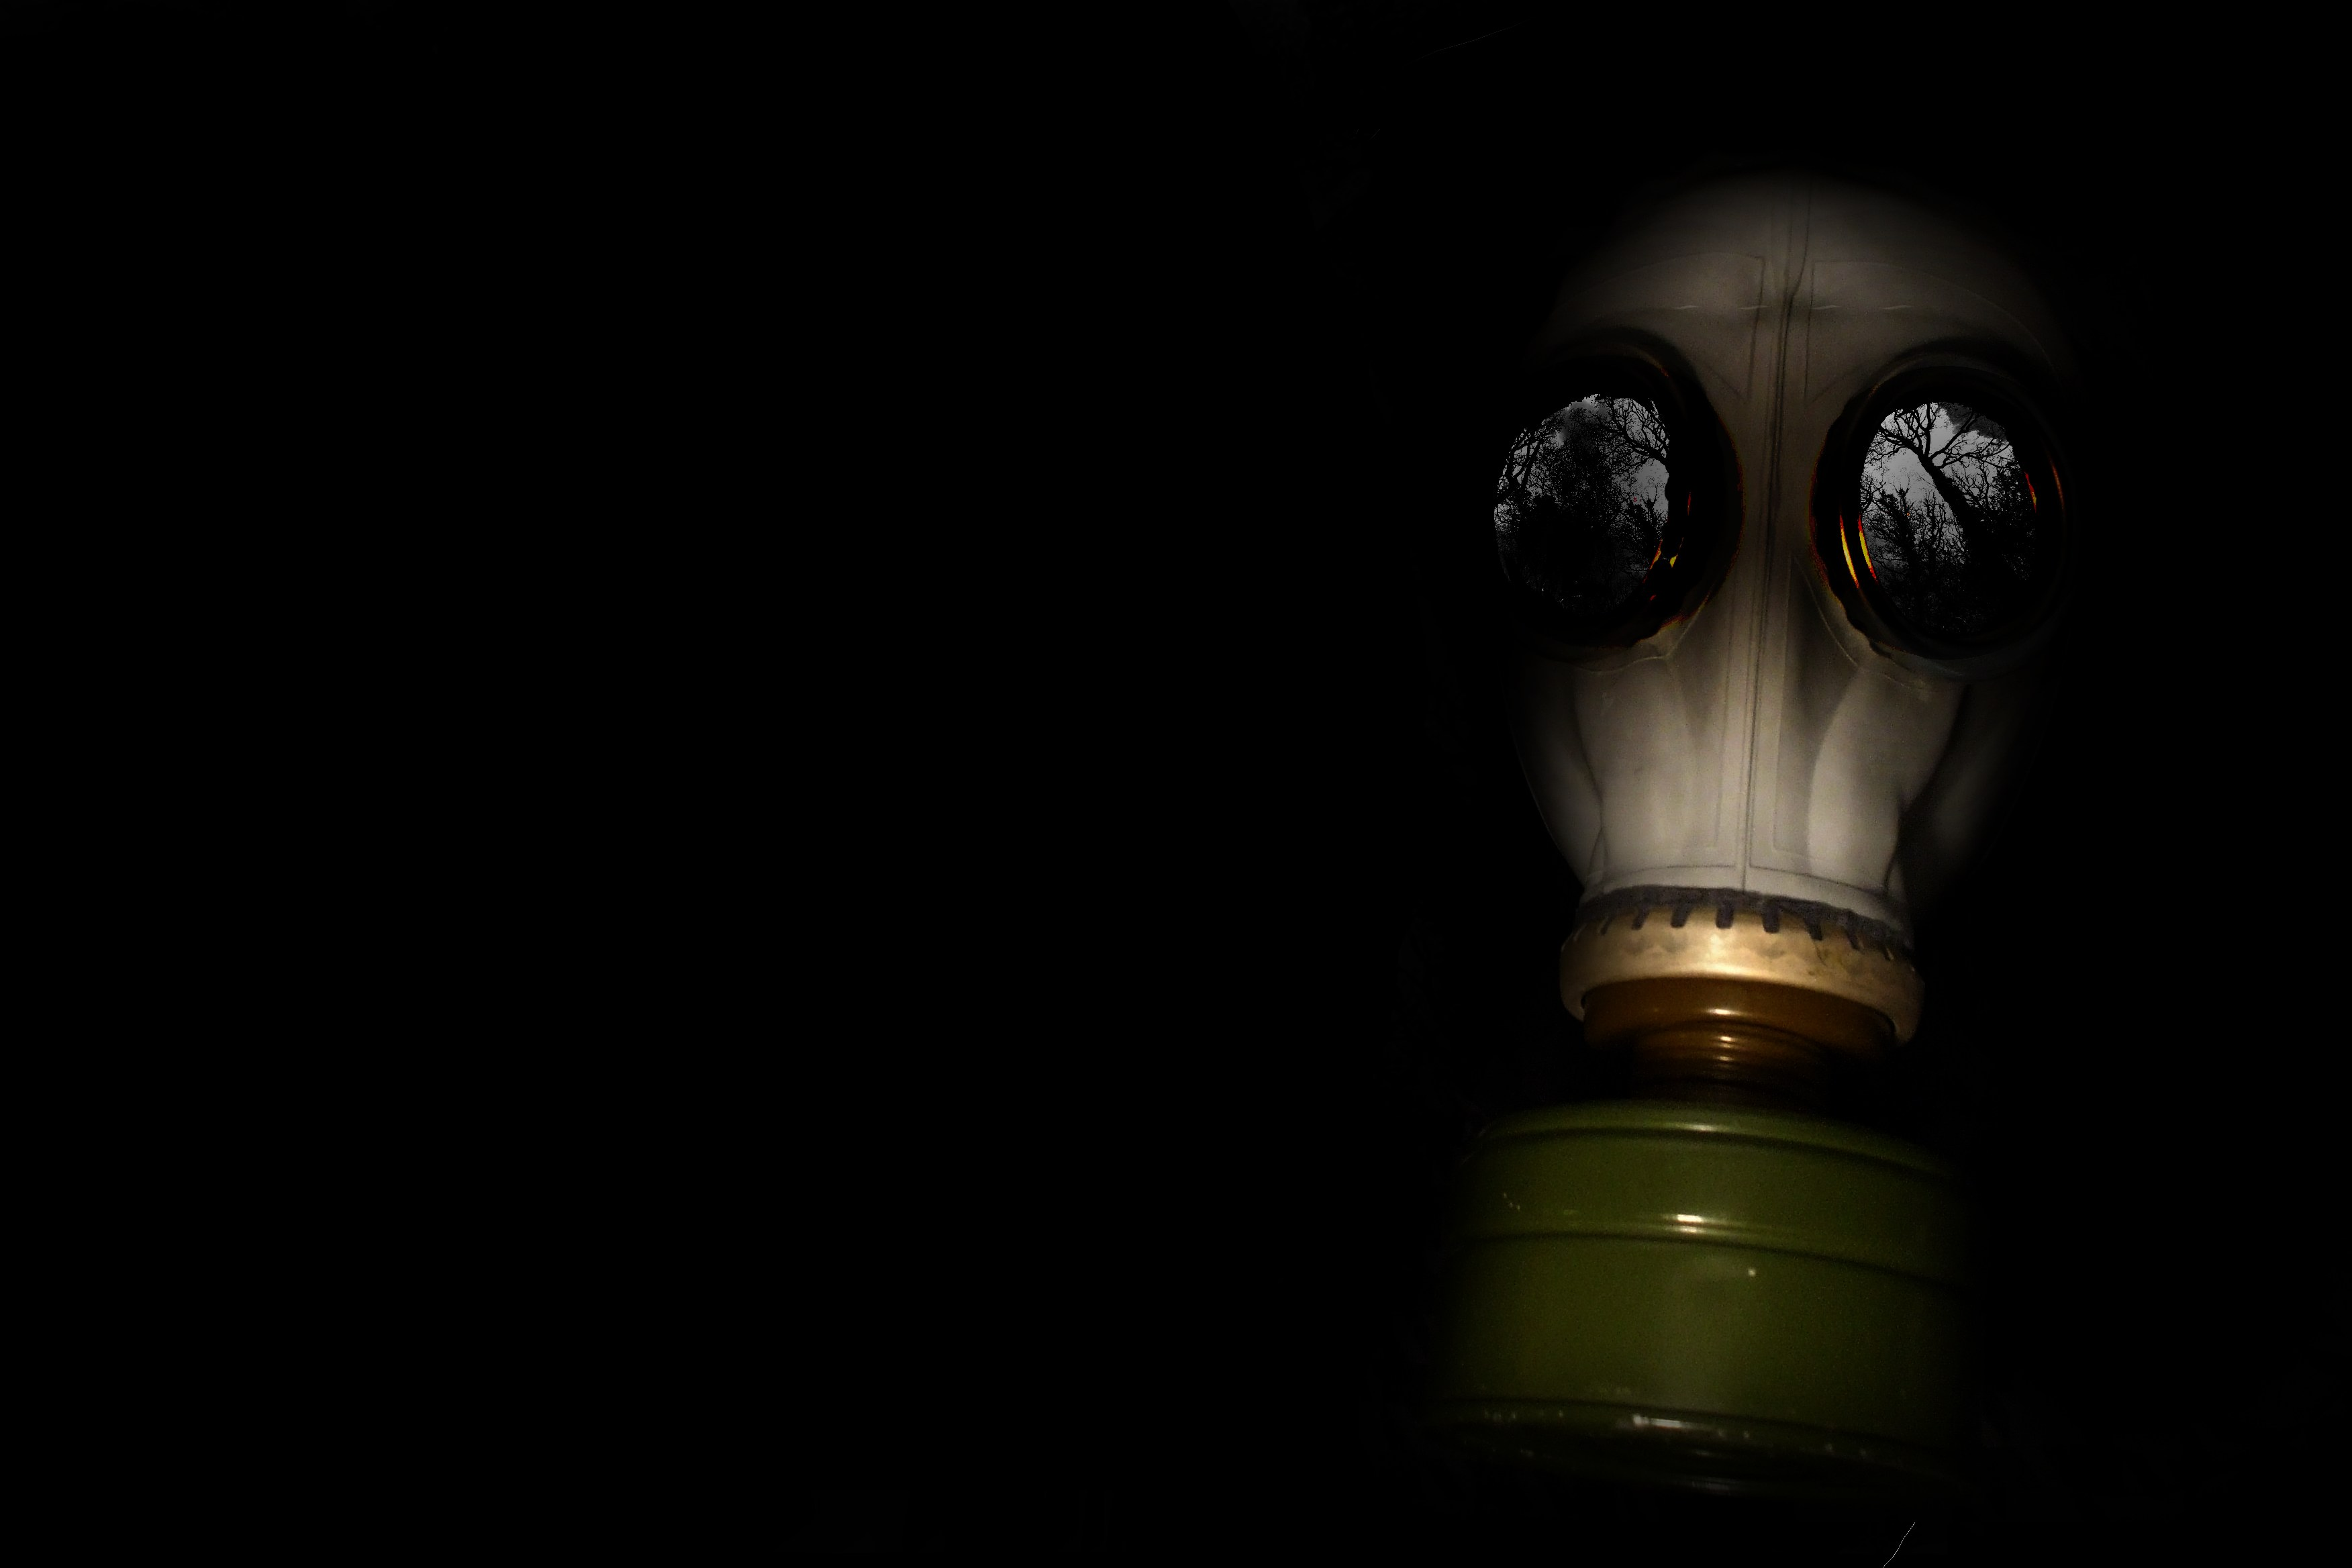 Science-Fiction - Gas Mask  Wallpaper